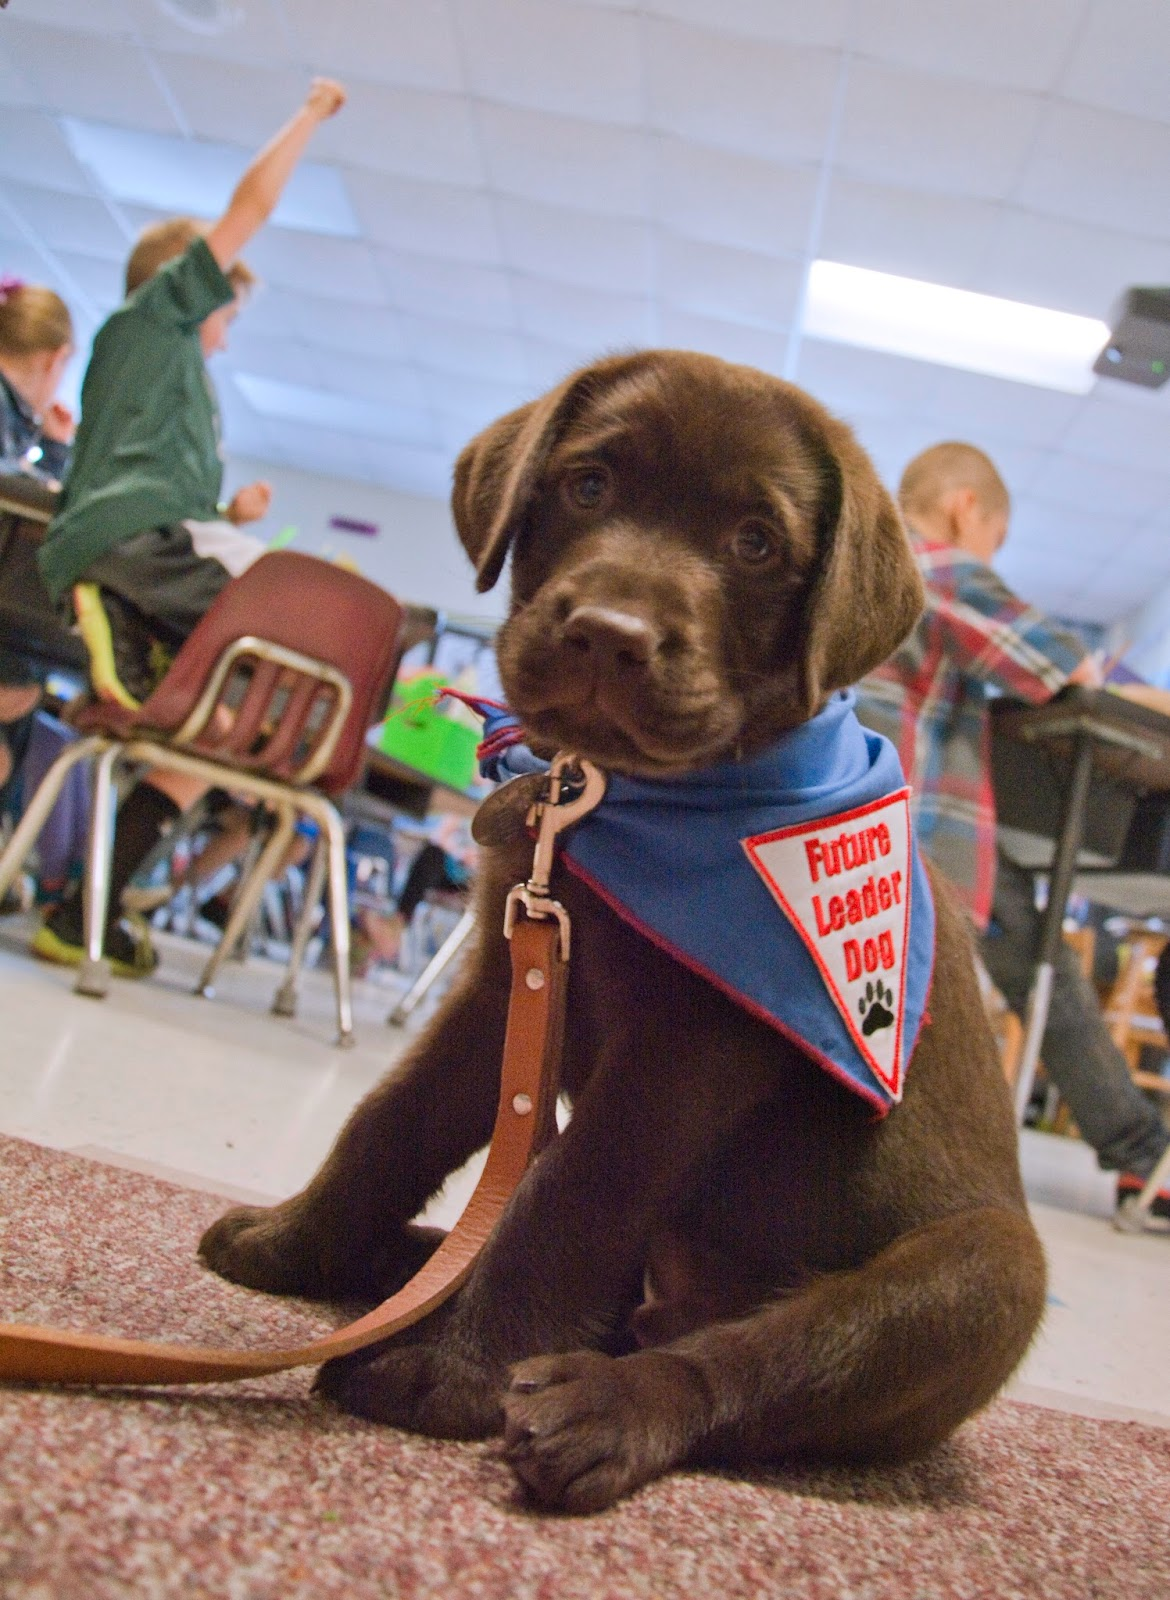 A cute little chocolate lab puppy is sitting facing the camera. He is wearing the blue Future Leader Dog bandana and a brown leash is attached to his collar. In the background are second-graders at their desks, the one boy dressed in a green sweatshrit has his hand raised.